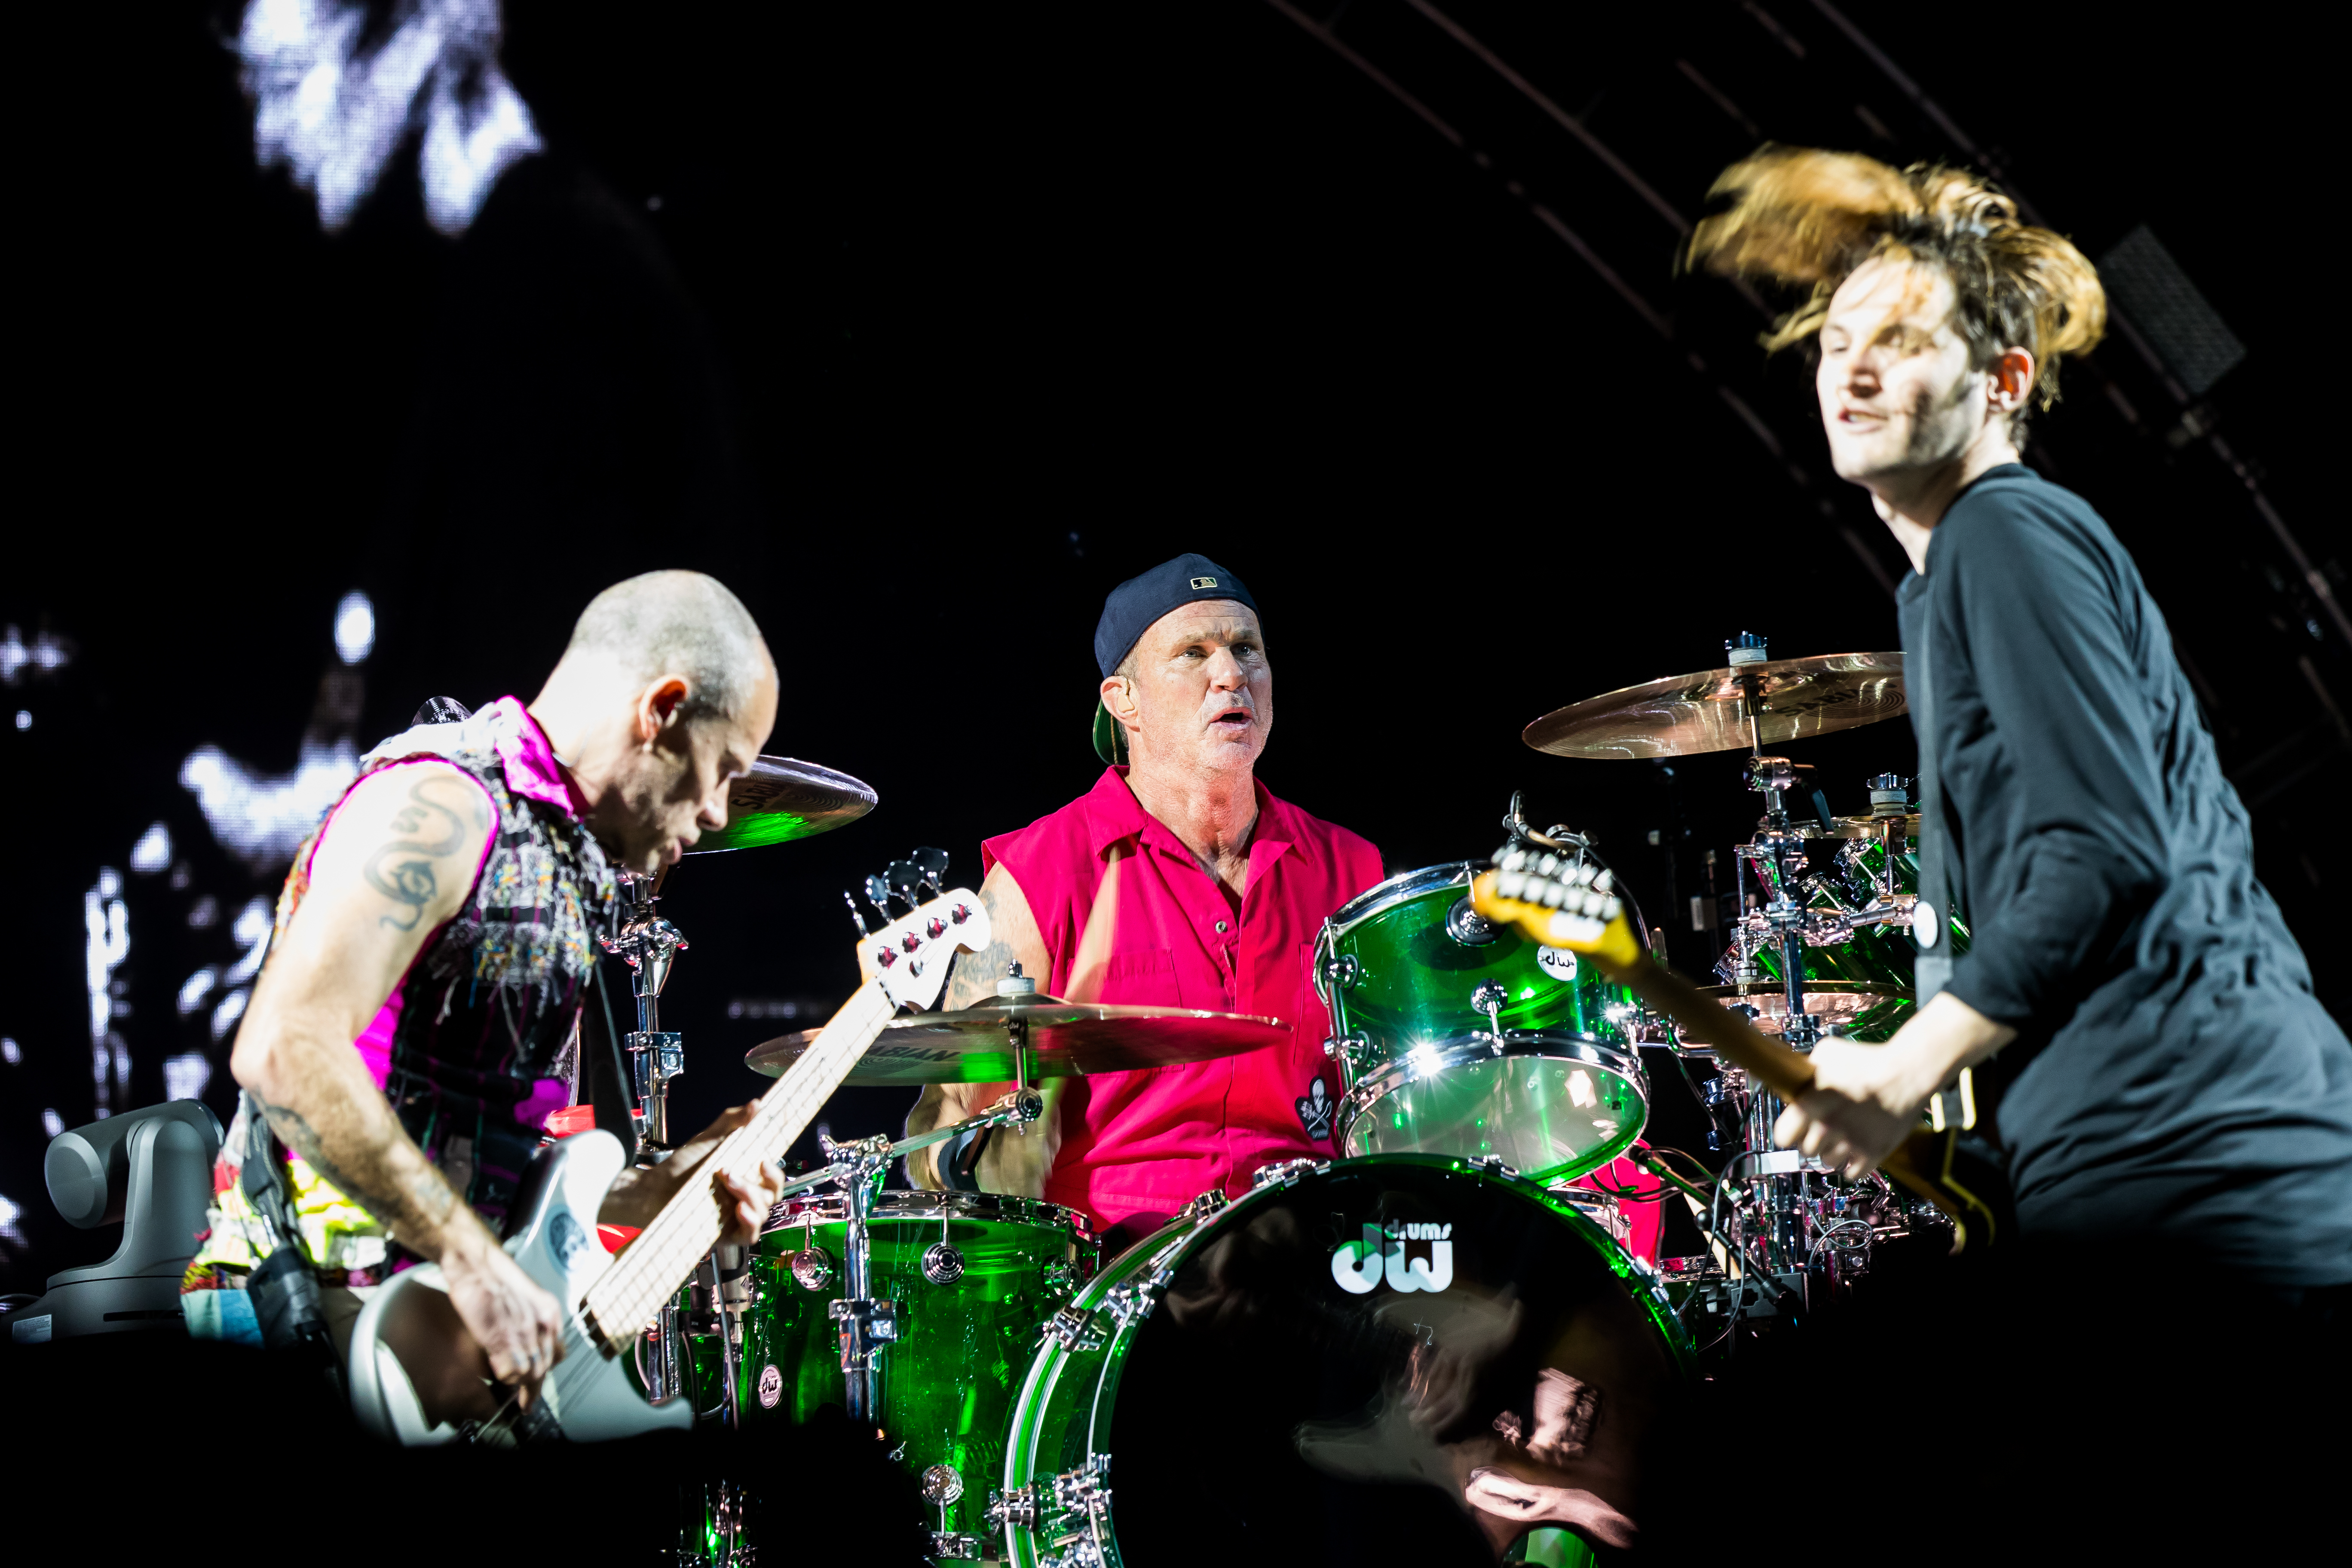 Red Hot Chili Peppers 2016 : datei red hot chili peppers rock am ring 2016 2016156230650 2016 06 04 rock am ring sven ~ Russianpoet.info Haus und Dekorationen